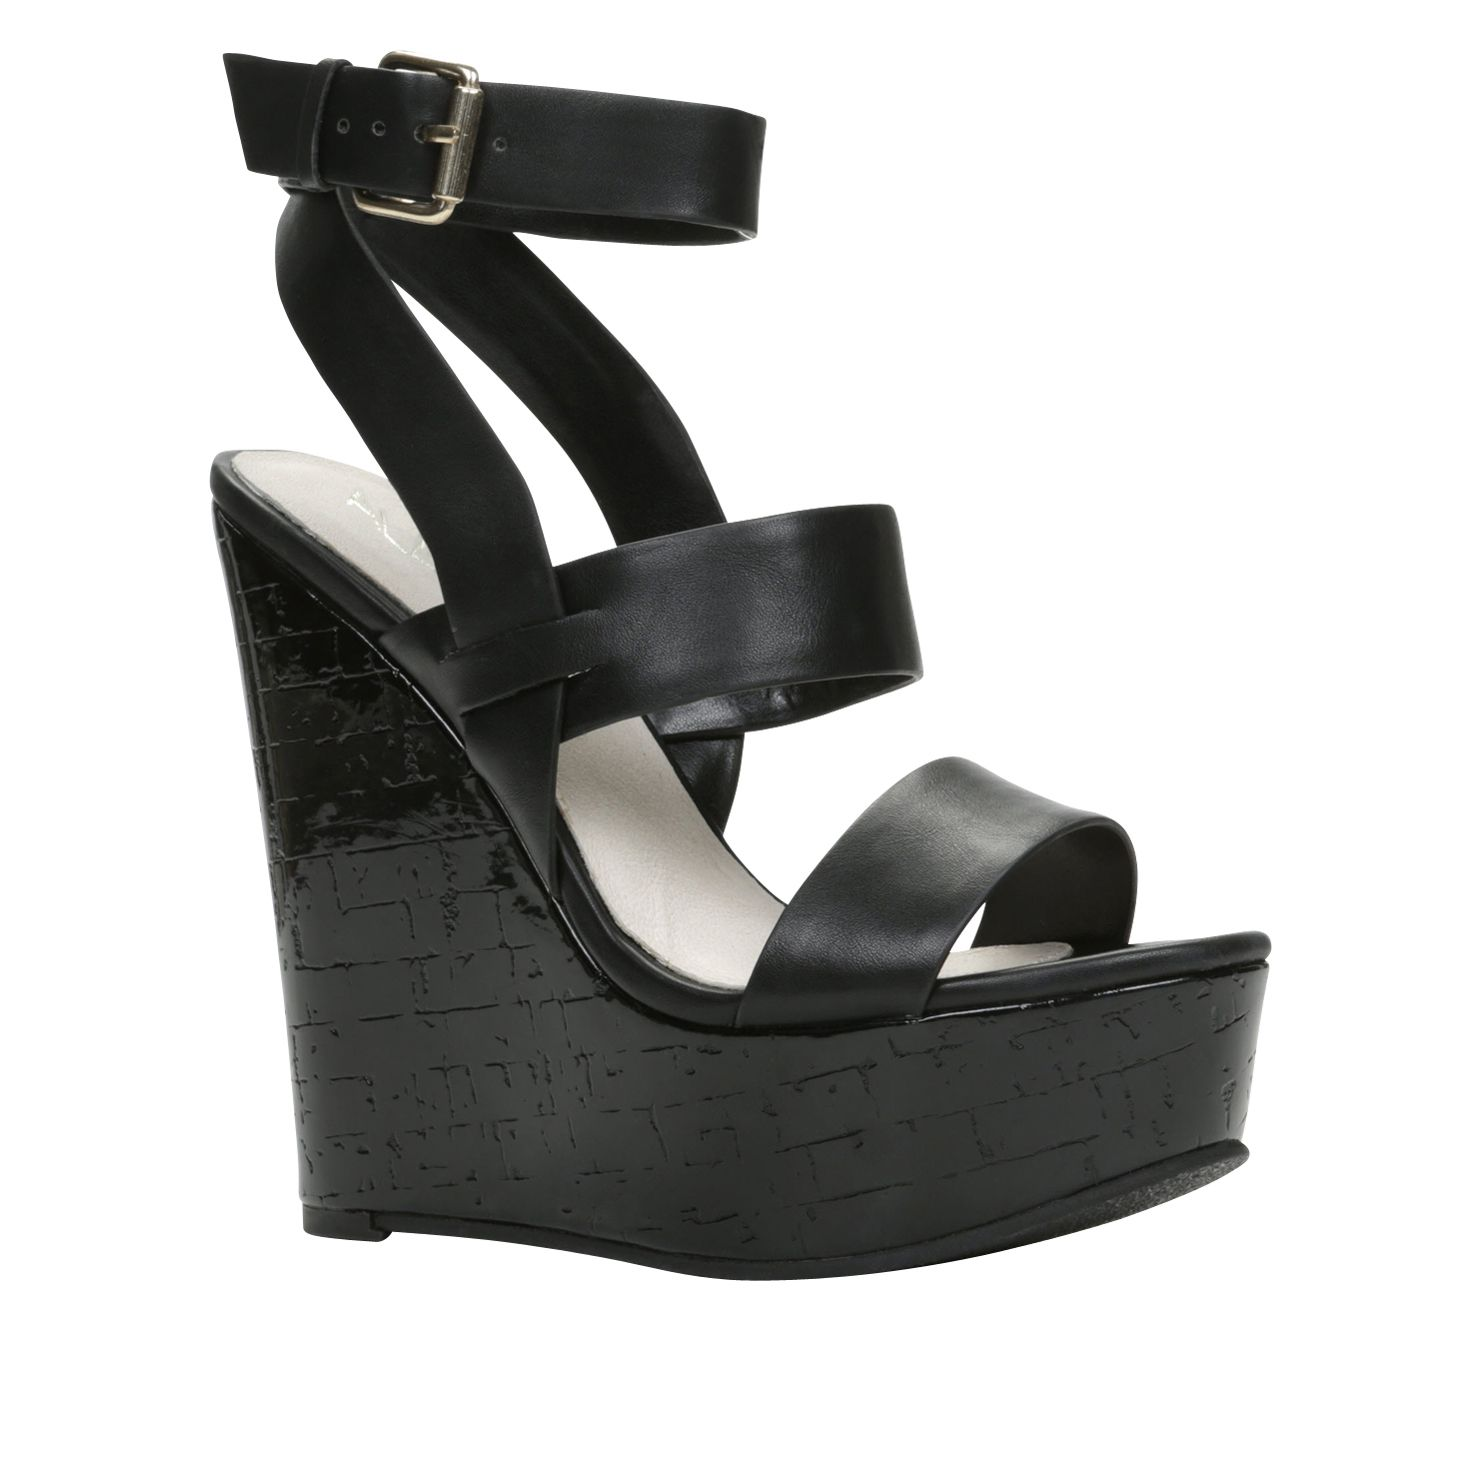 Birwen ankle strap wedge sandals